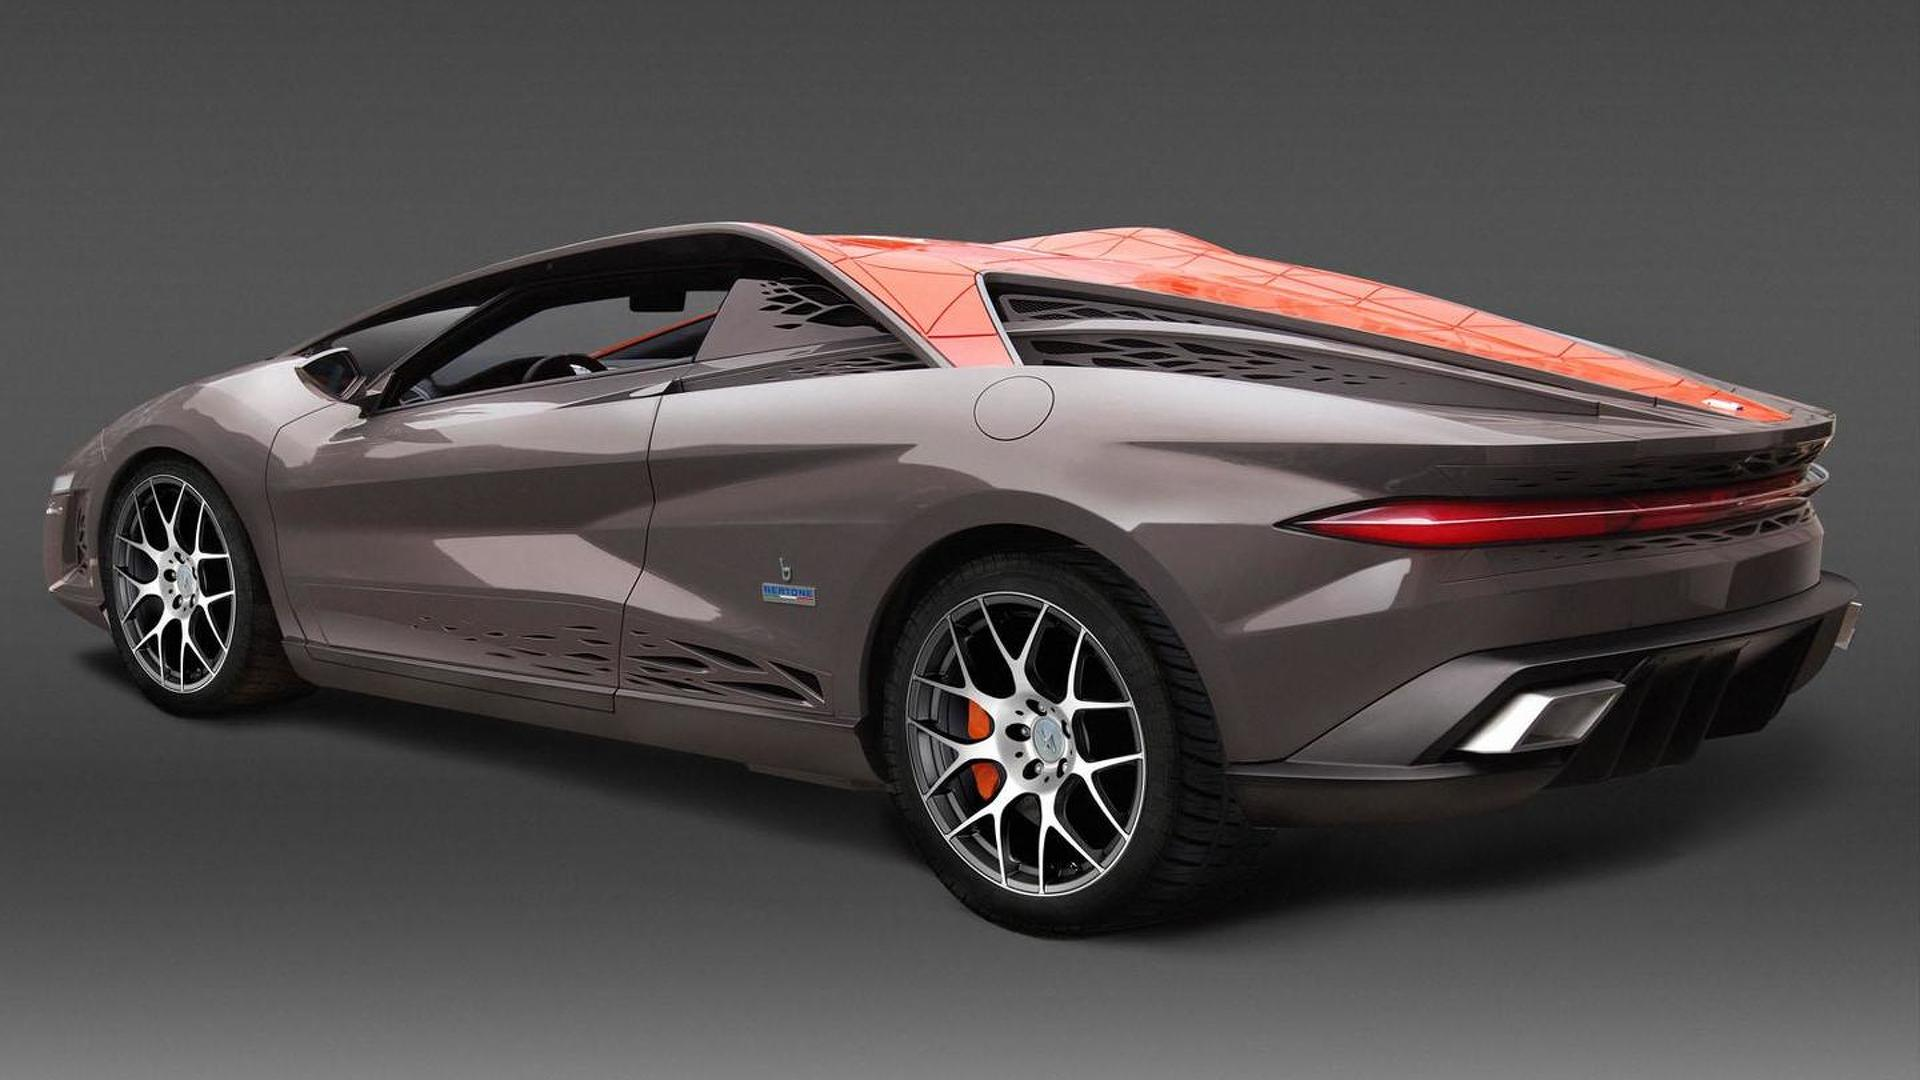 Bertone Nuccio prototype could be sold for 2 million euros